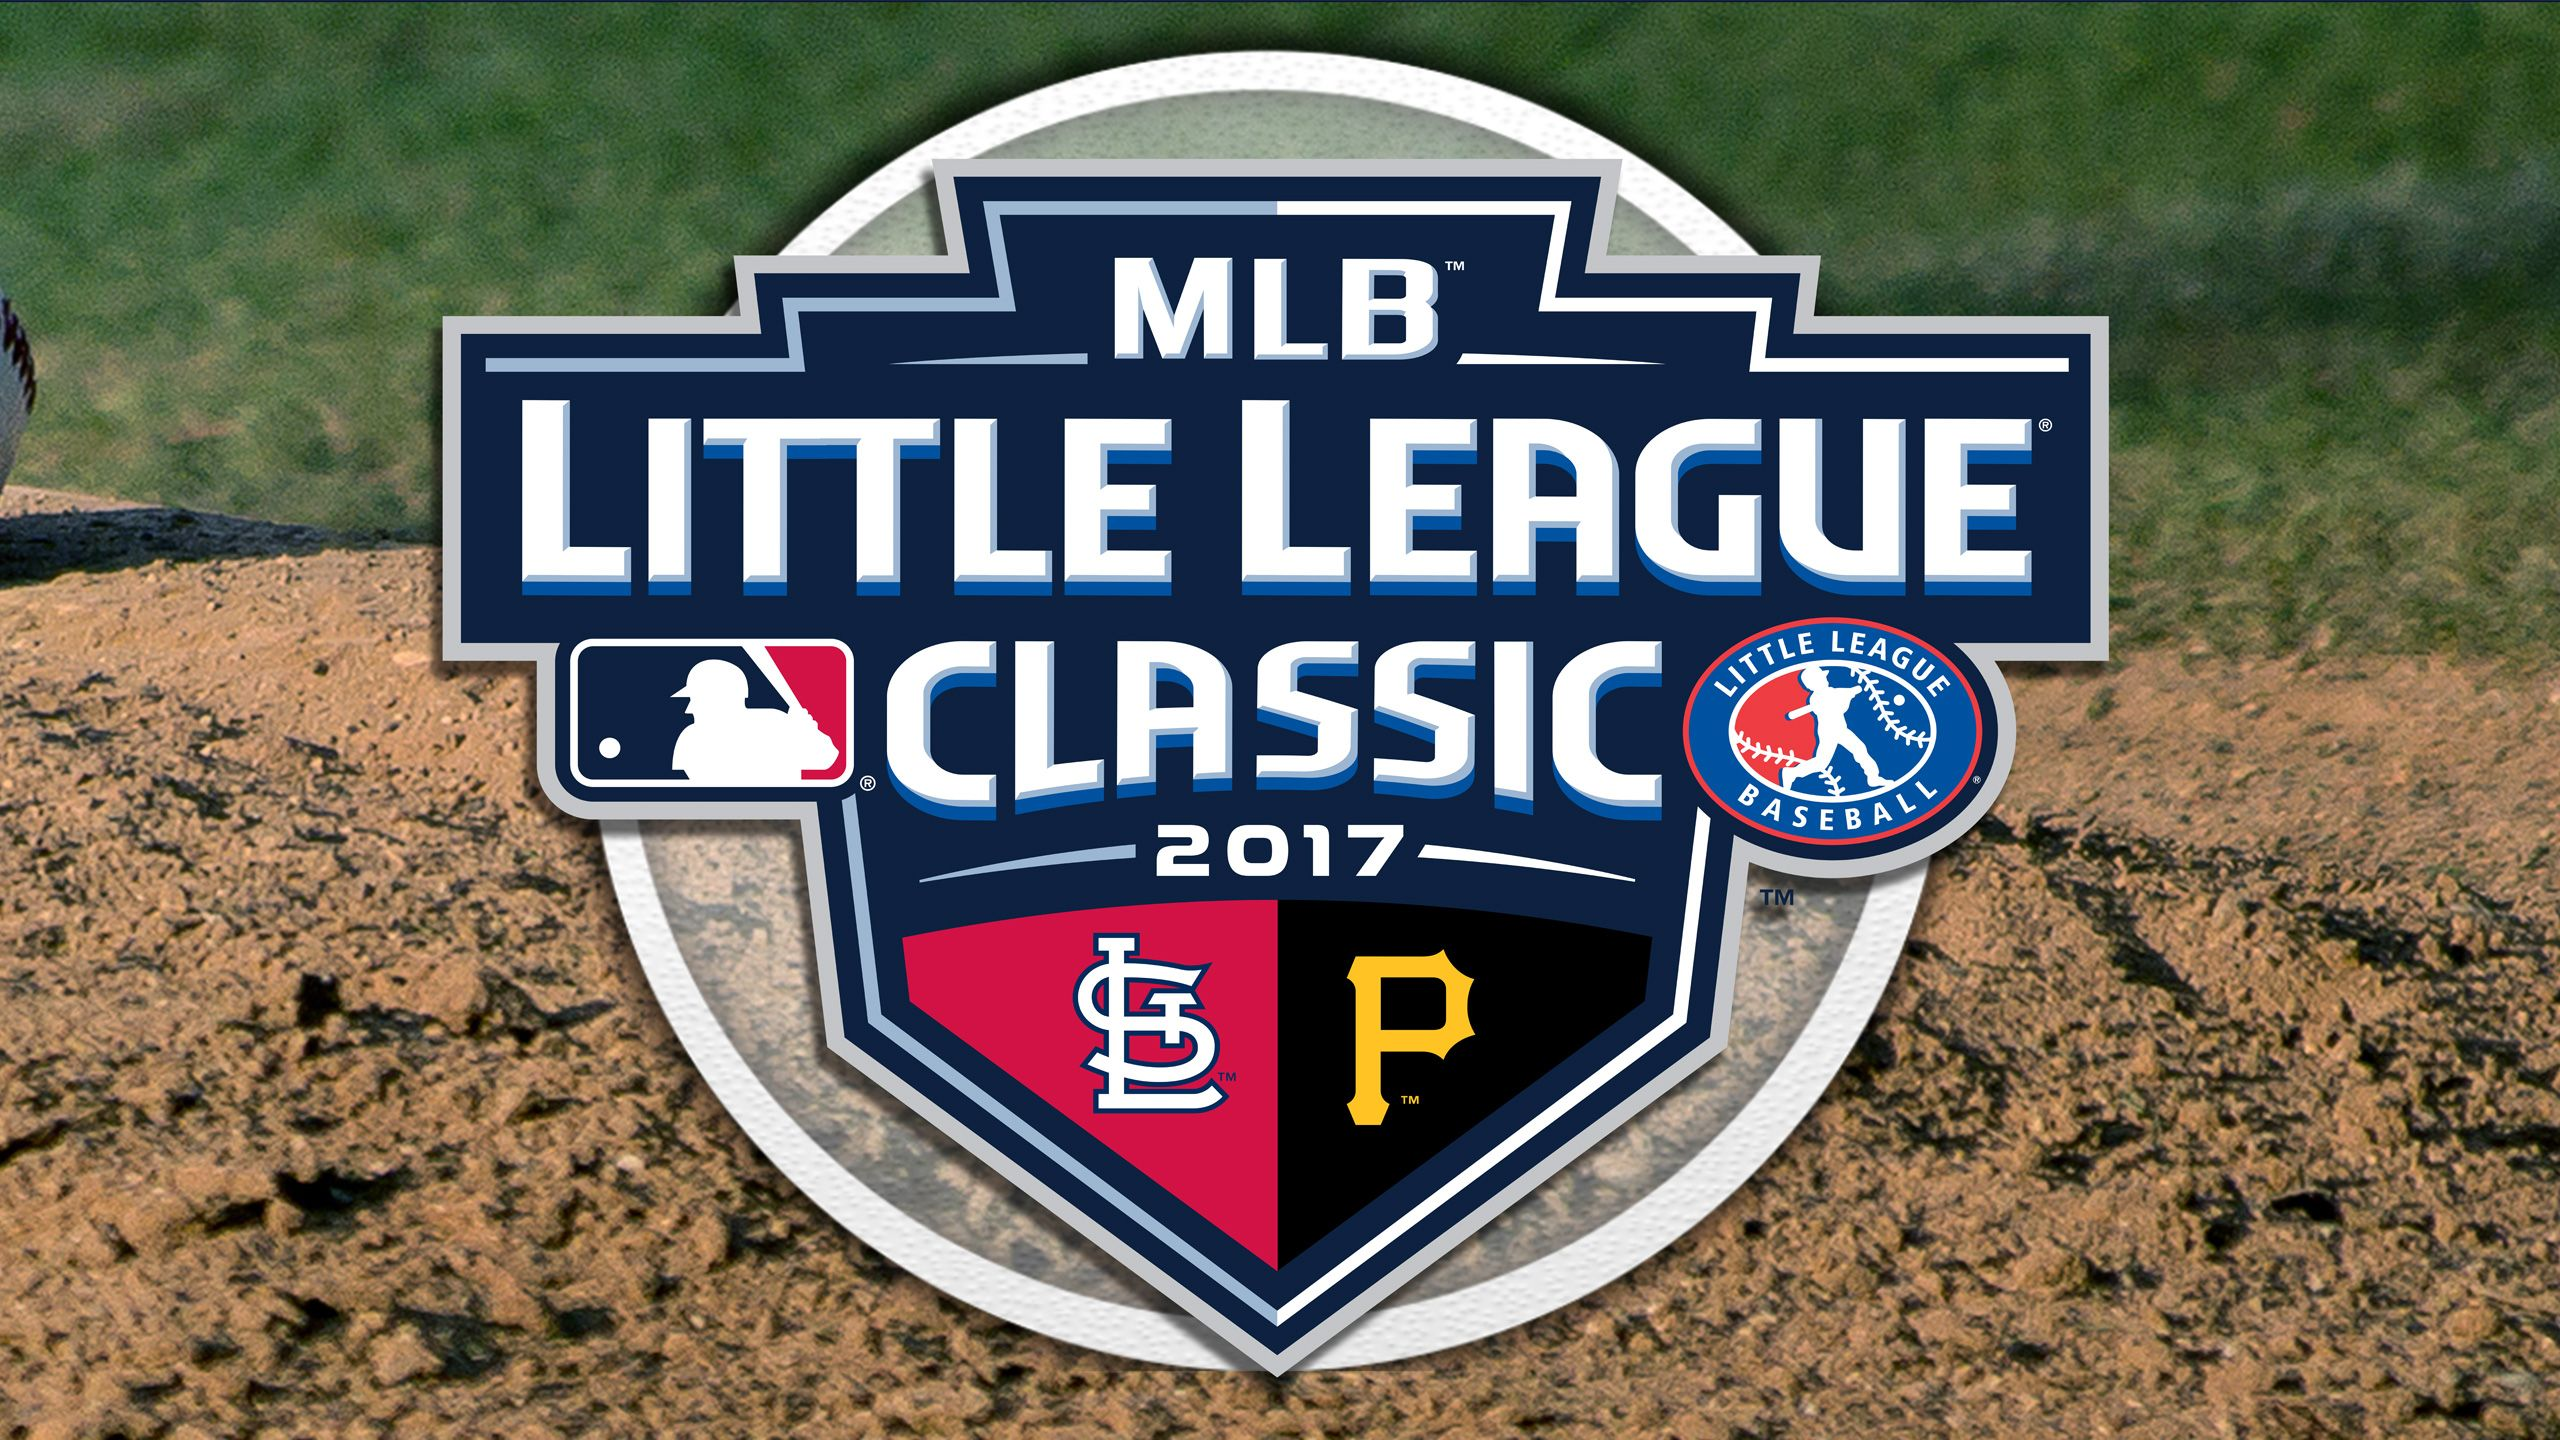 St. Louis Cardinals vs. Pittsburgh Pirates (re-air)